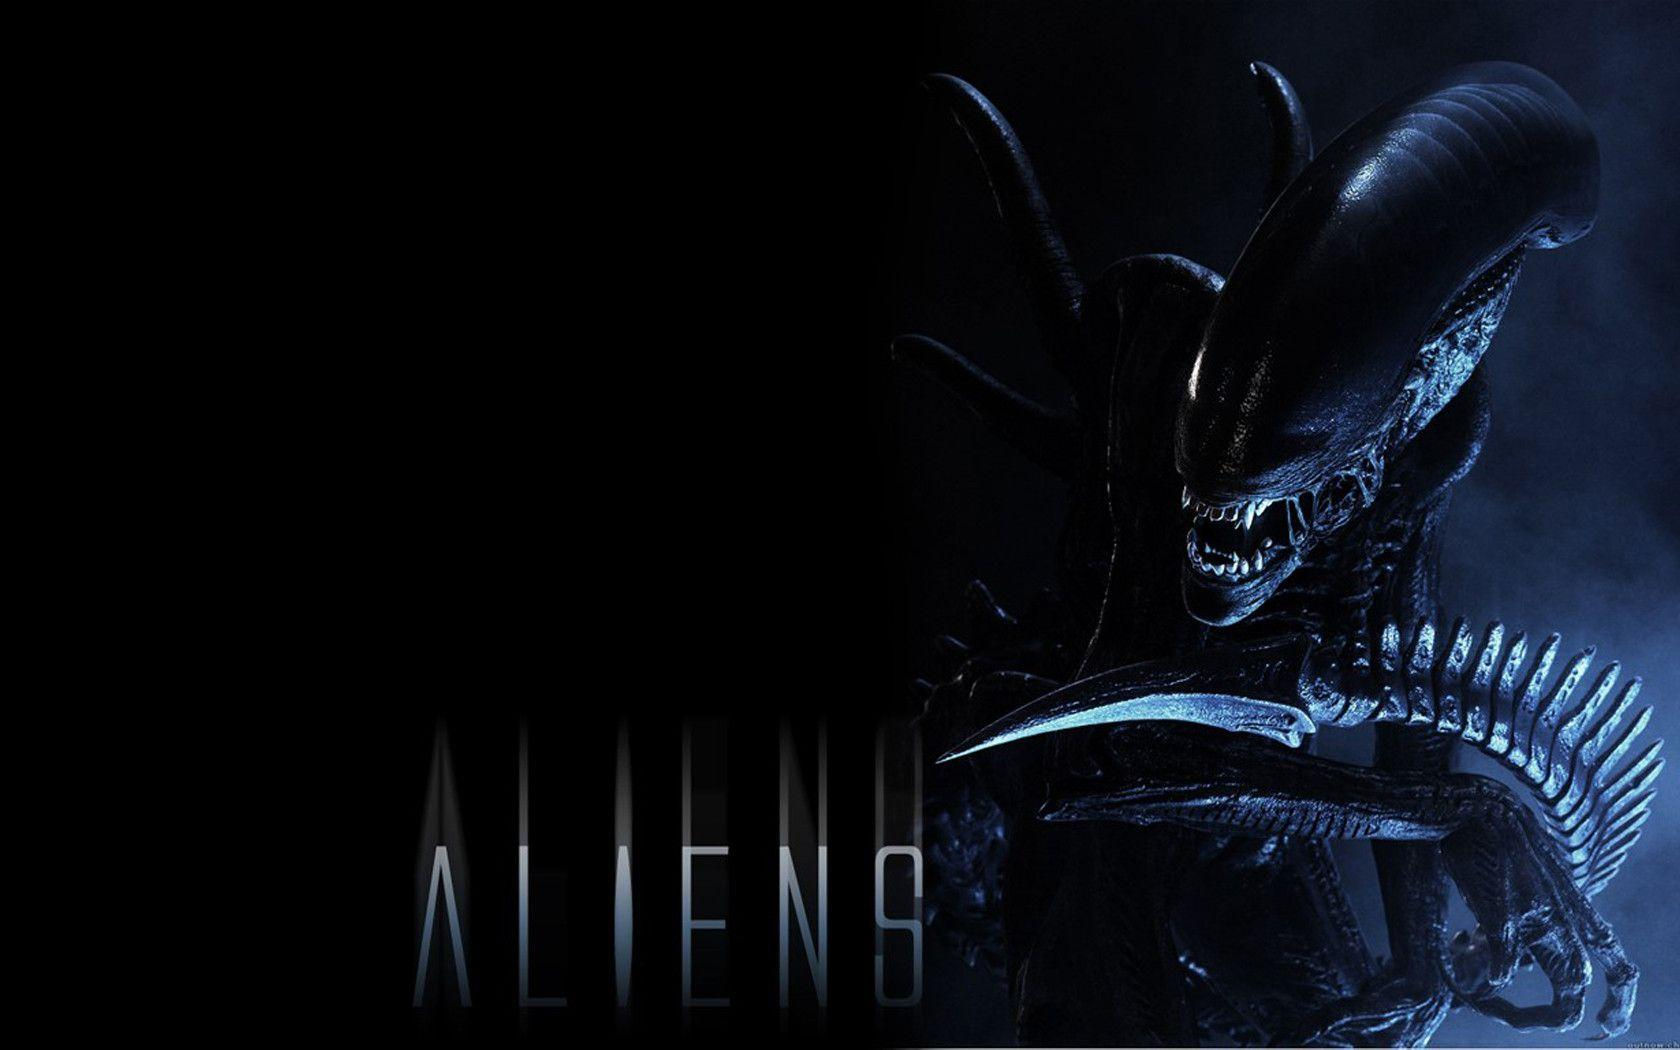 Alien Wallpaper 2 By Spitfire666xXxXx On DeviantArt